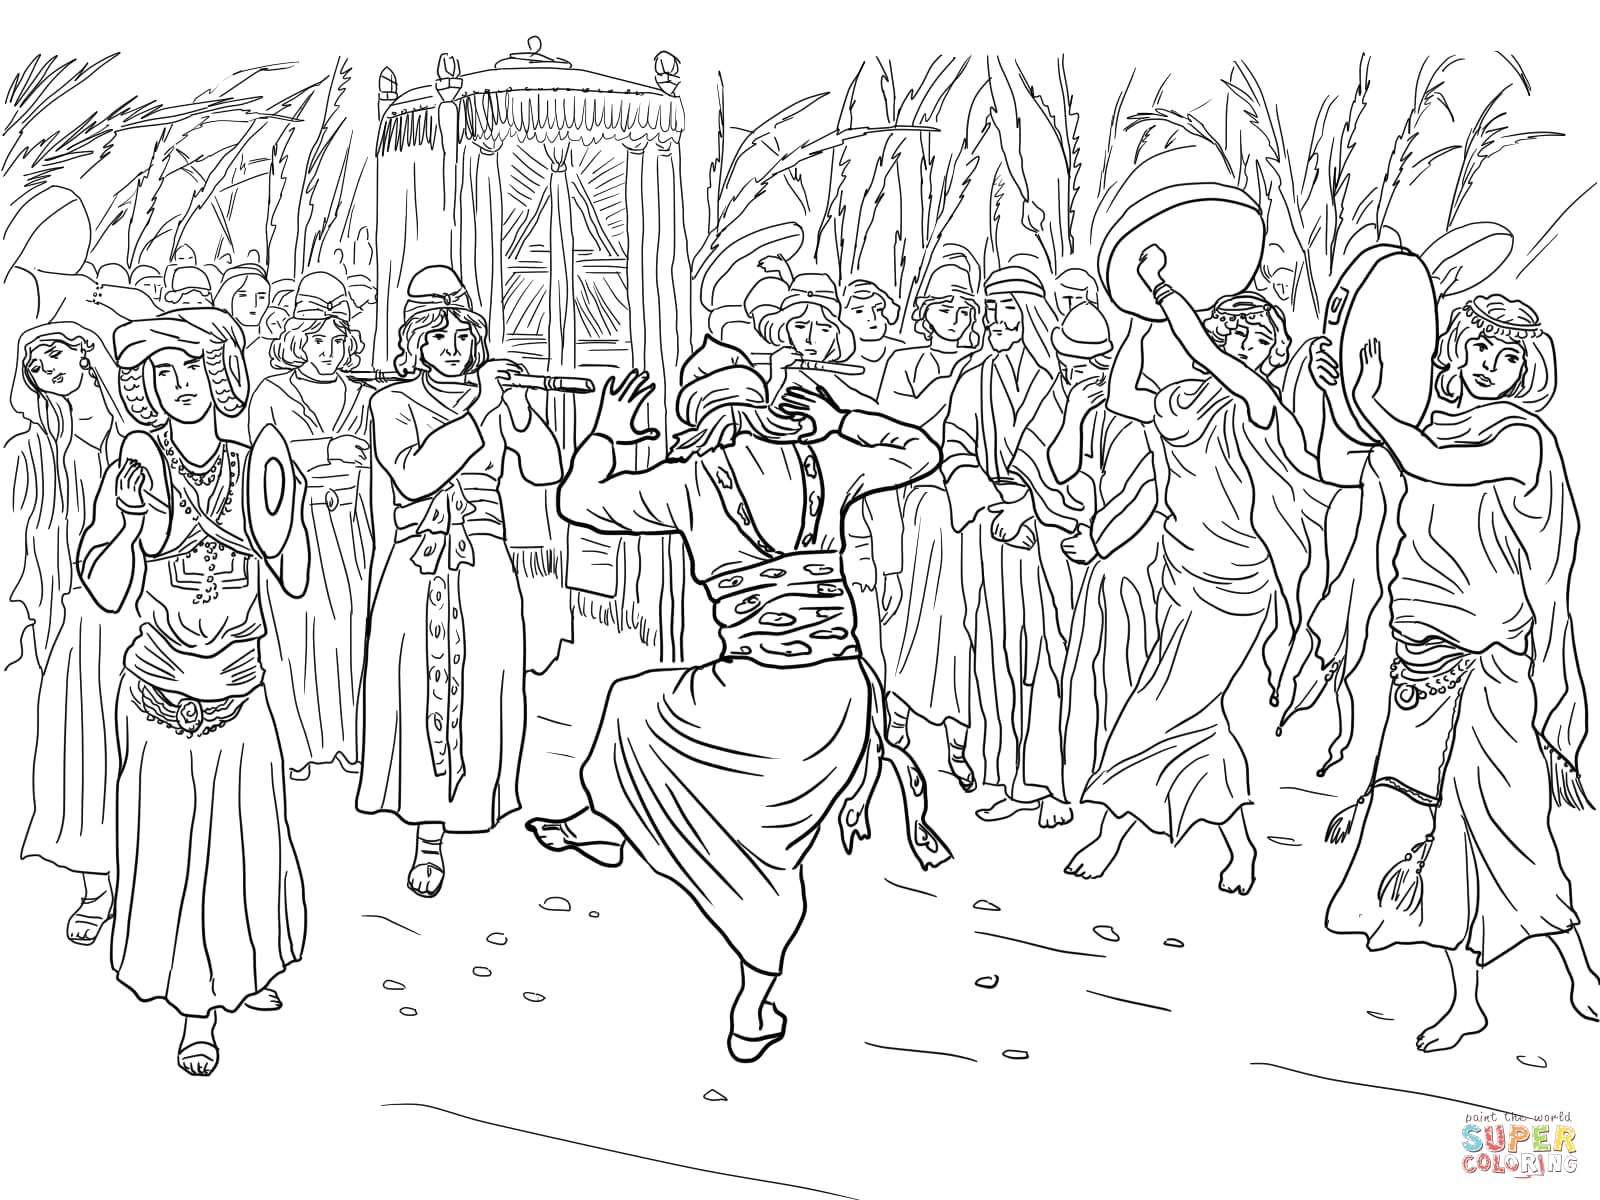 King David and the Ark Of the Covenant Coloring Page King David Dancing before the Ark Of the Covenant Coloring